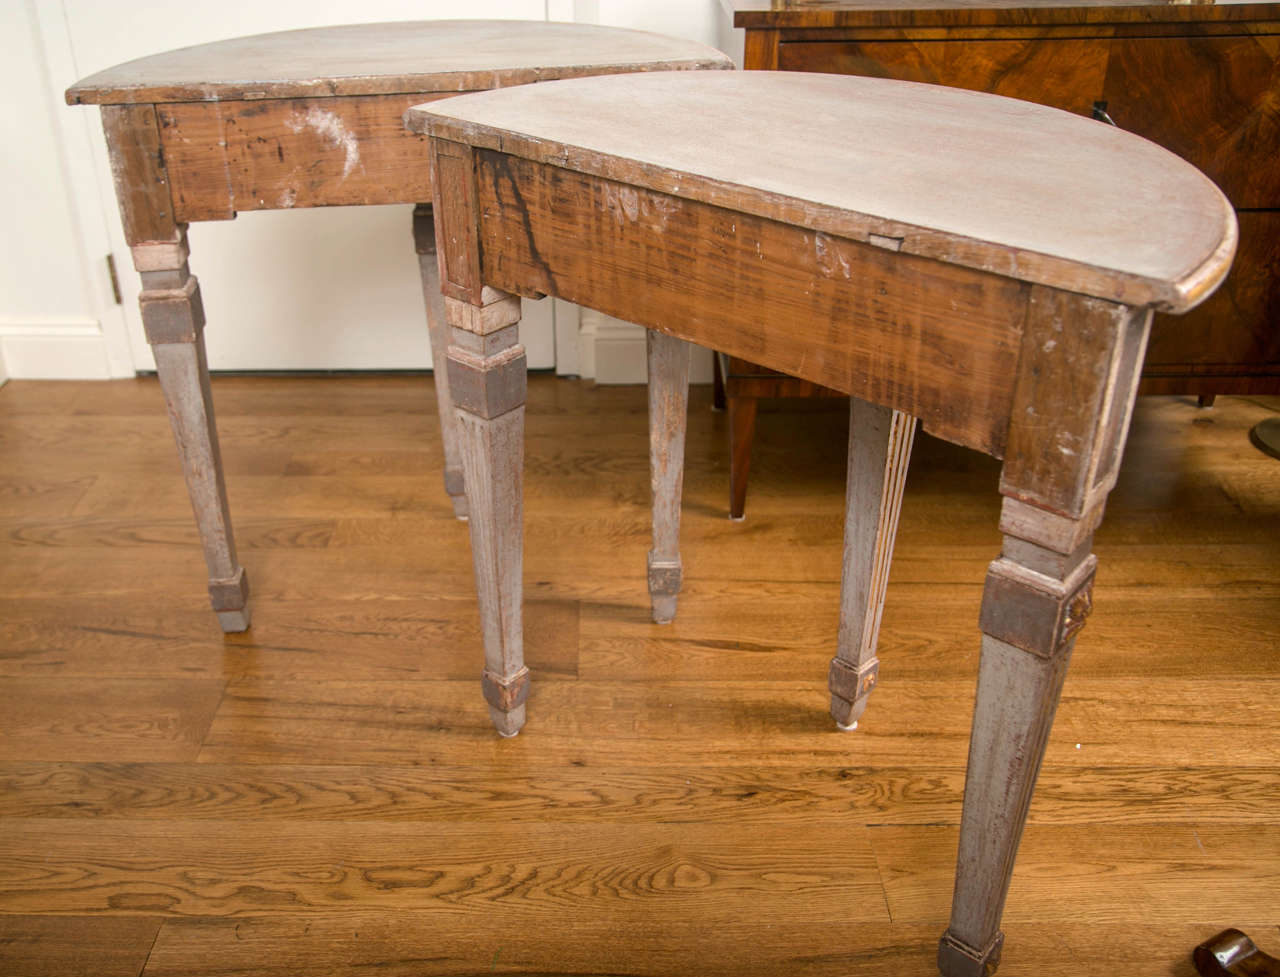 Pair of 18th Century Neoclassical Painted Demilune Consoles or Tables 9